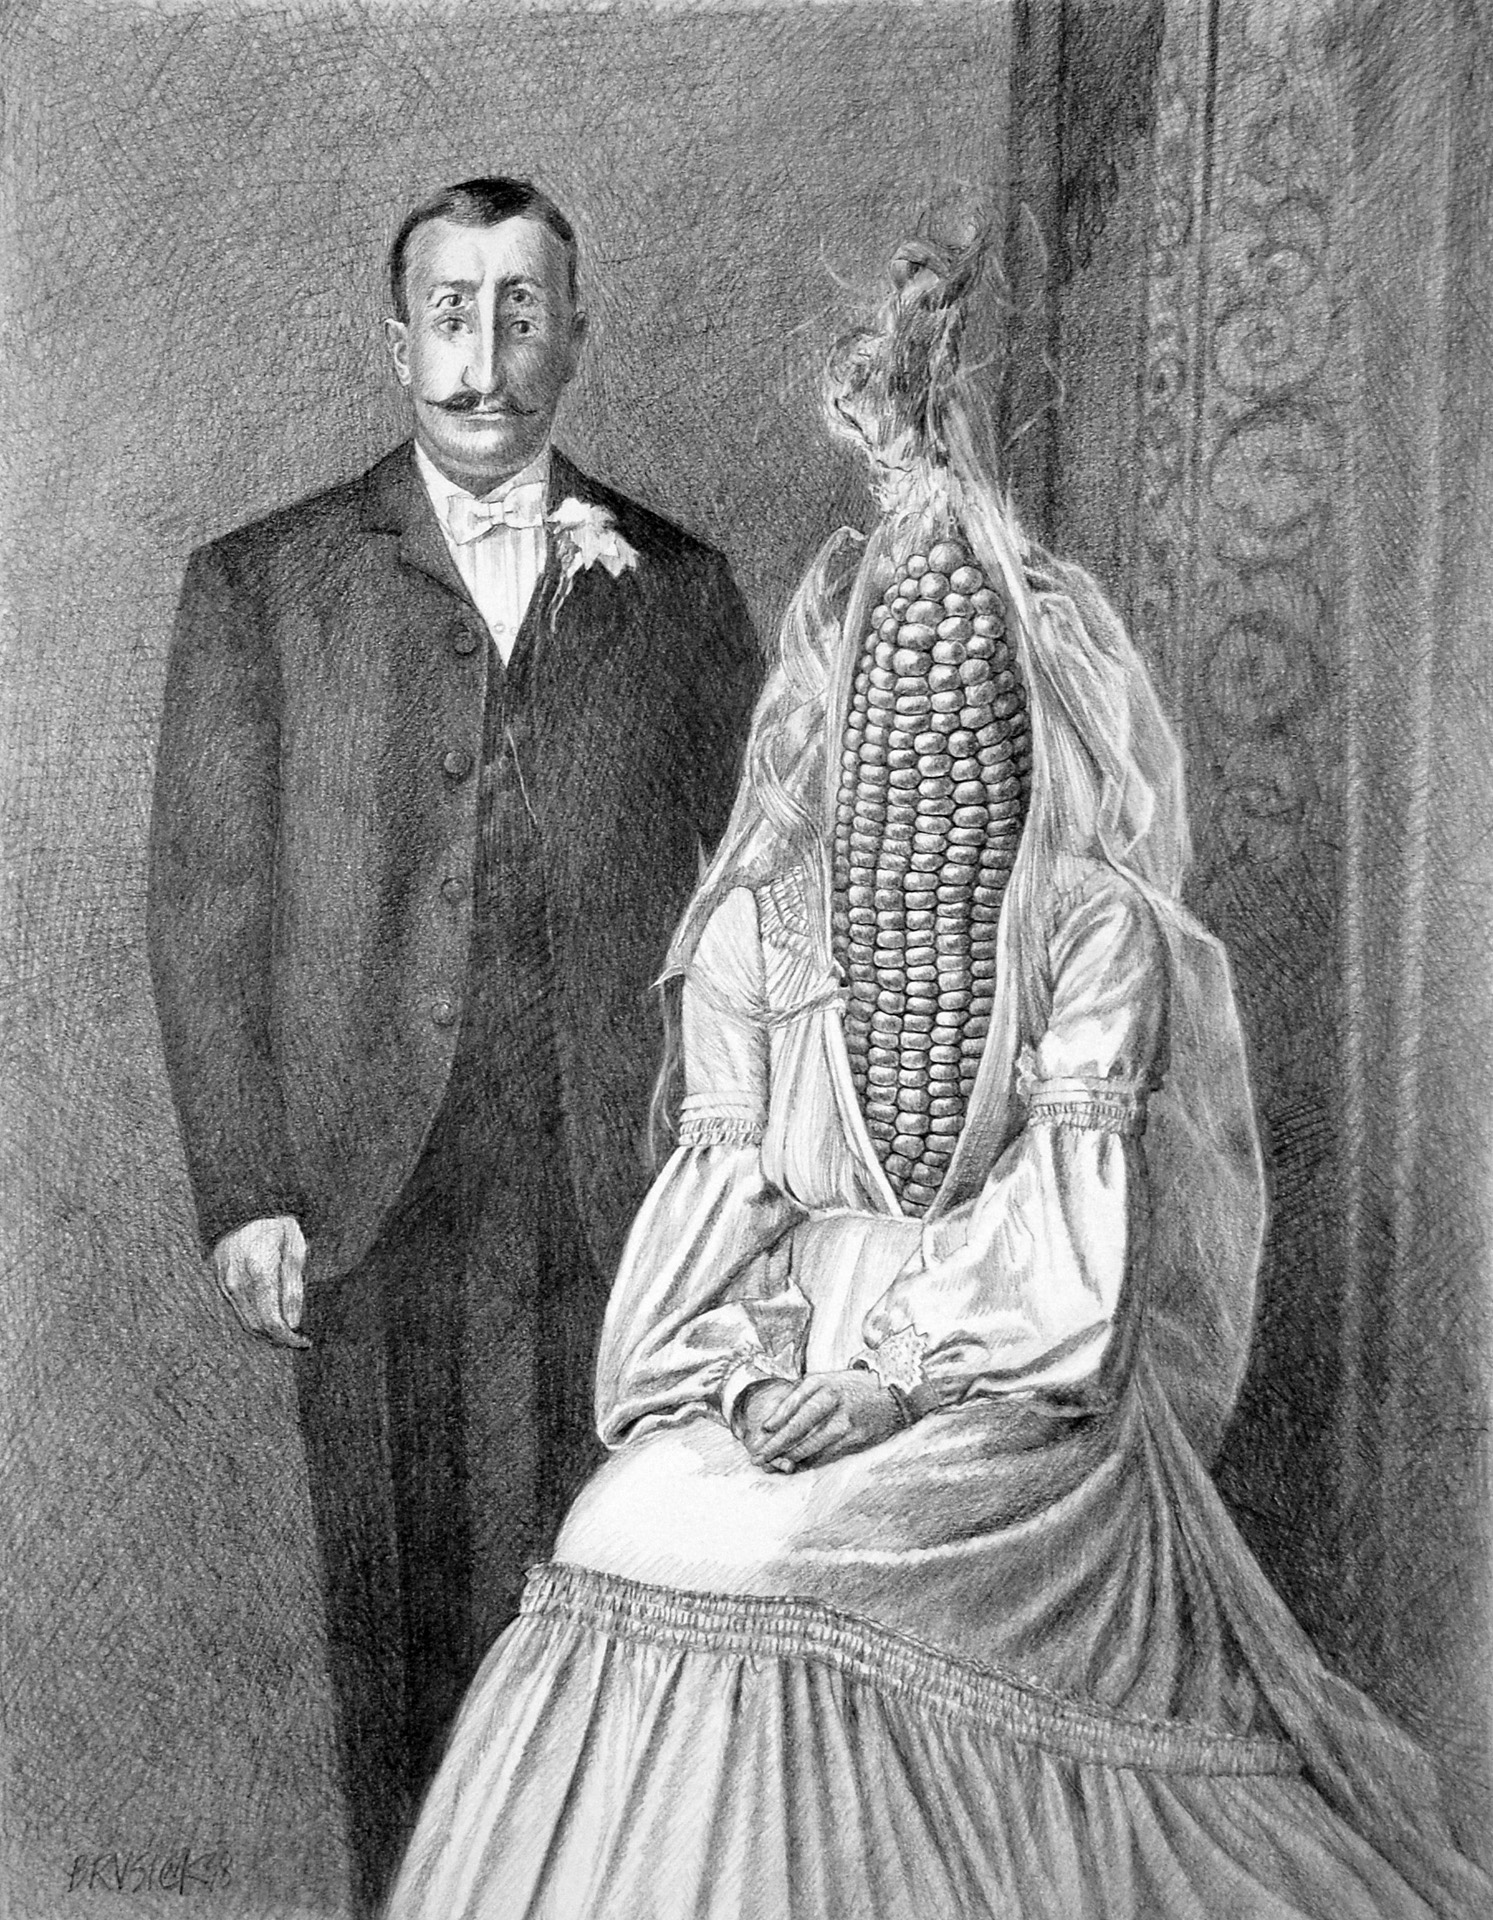 August Wedding, 2010, Pencil on Bristol Paper, 13.5 x 10.5 inches.